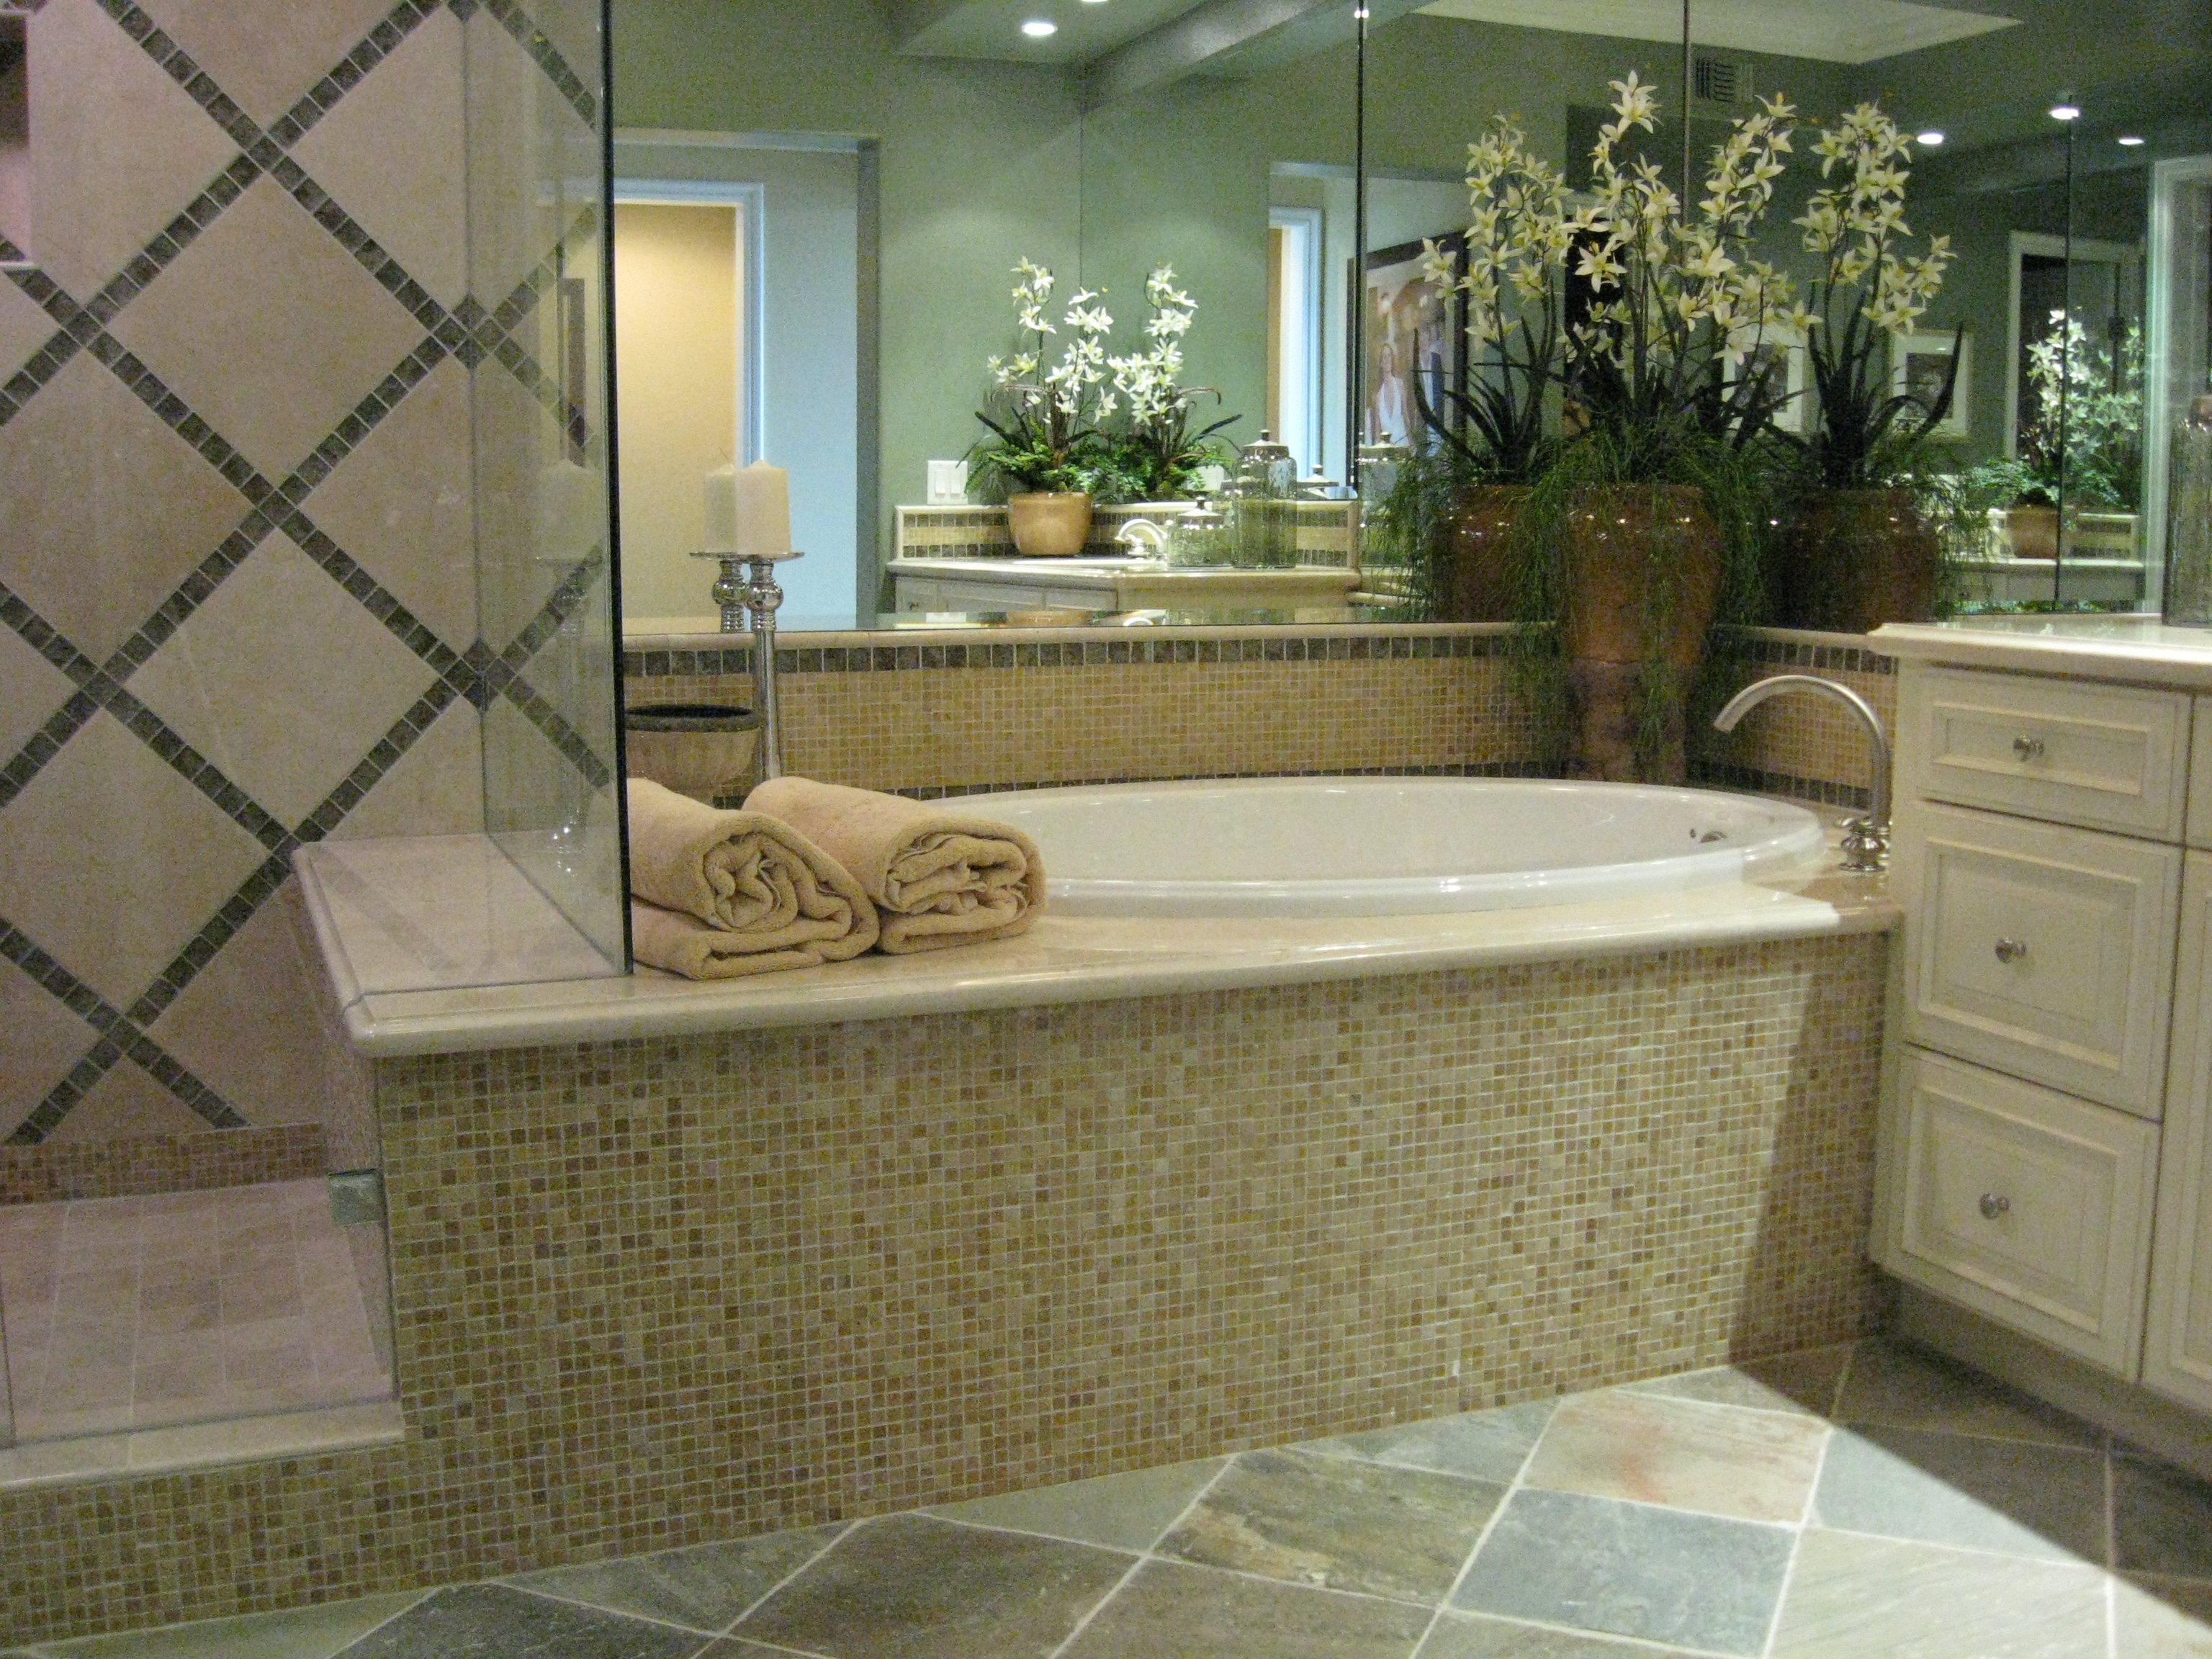 Lot 218 Plan B Master Tub – Home Accents